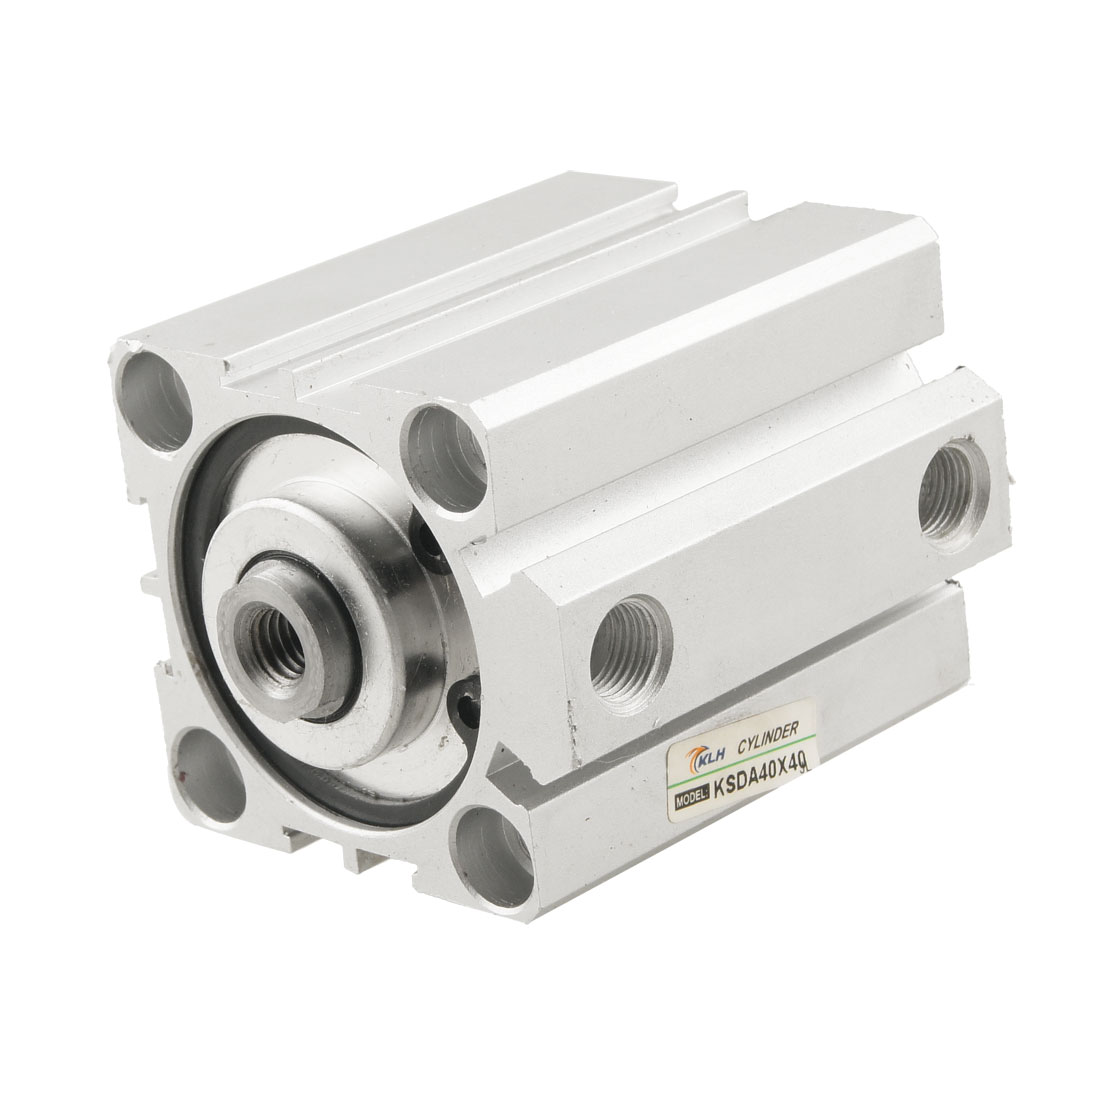 SDA40x40 40mm Bore 40mm Stroke Double Acting Aluminum Alloy Air Cylinder